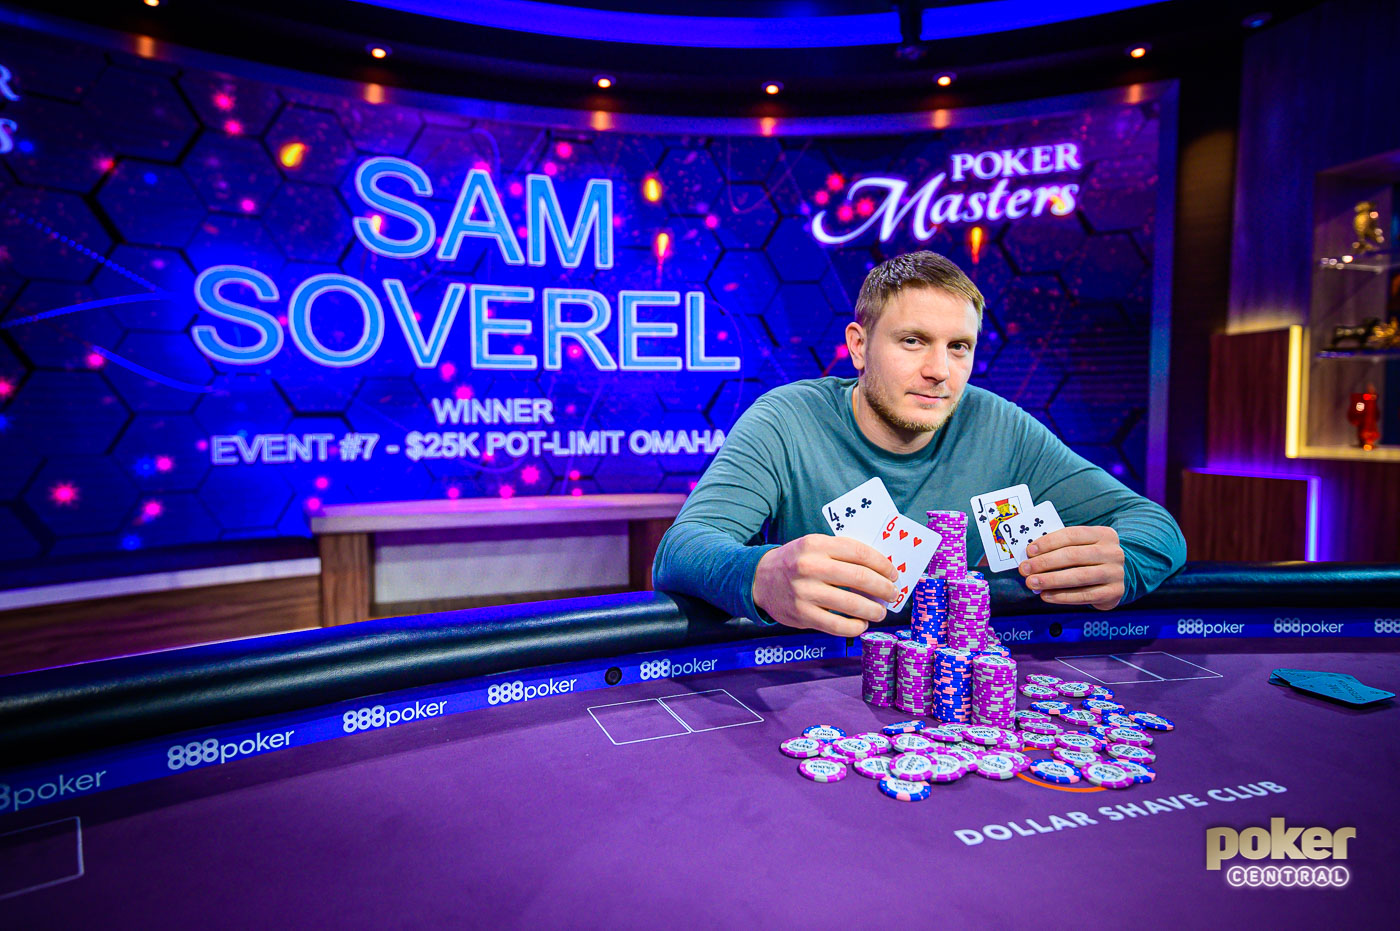 Sam Soverel poker masters